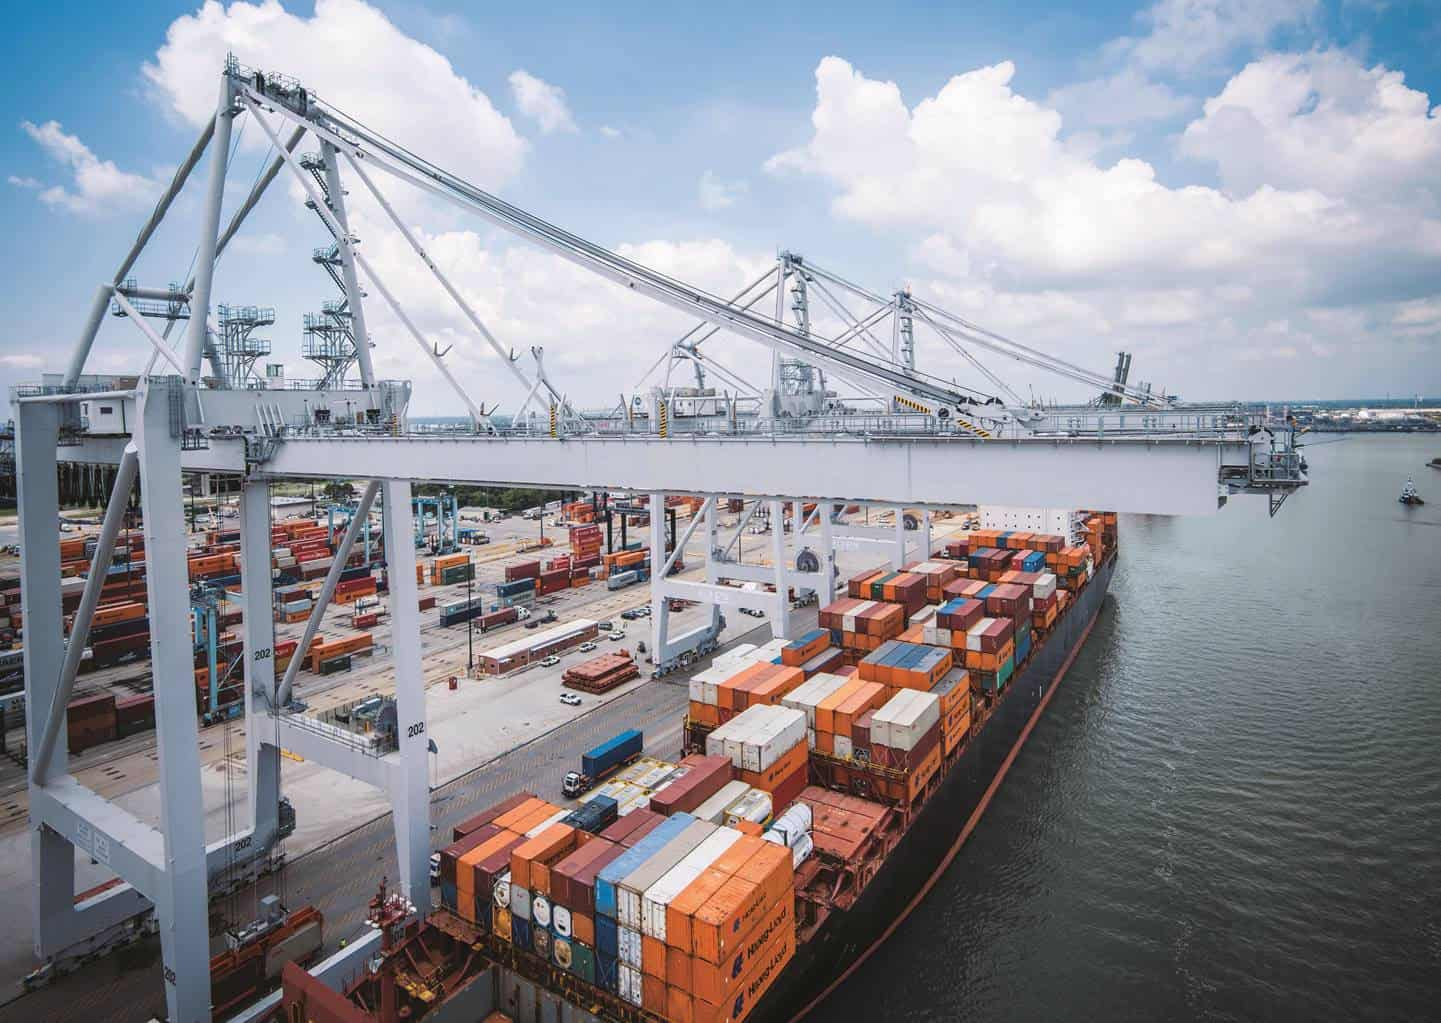 Port of Houston chooses Kalmar SmartPort solutions